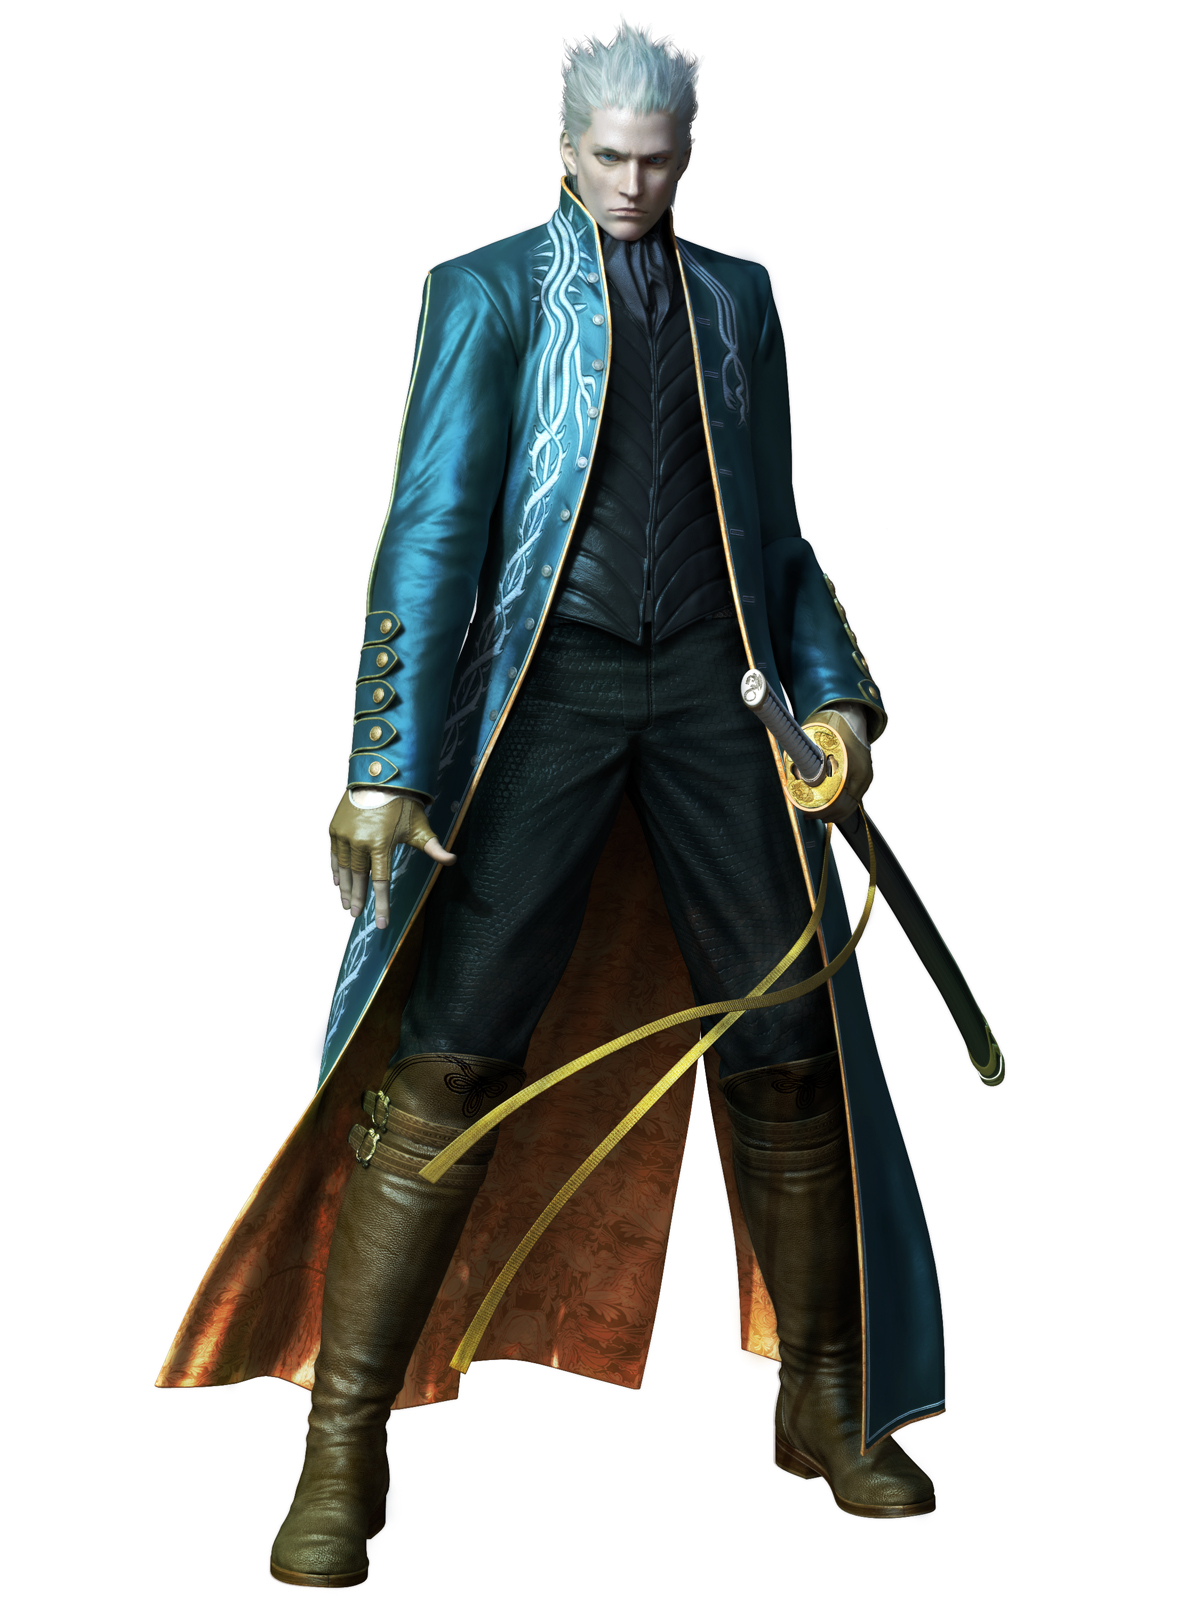 Vergil - Devil May Cry WikiVergil Devil May Cry 5